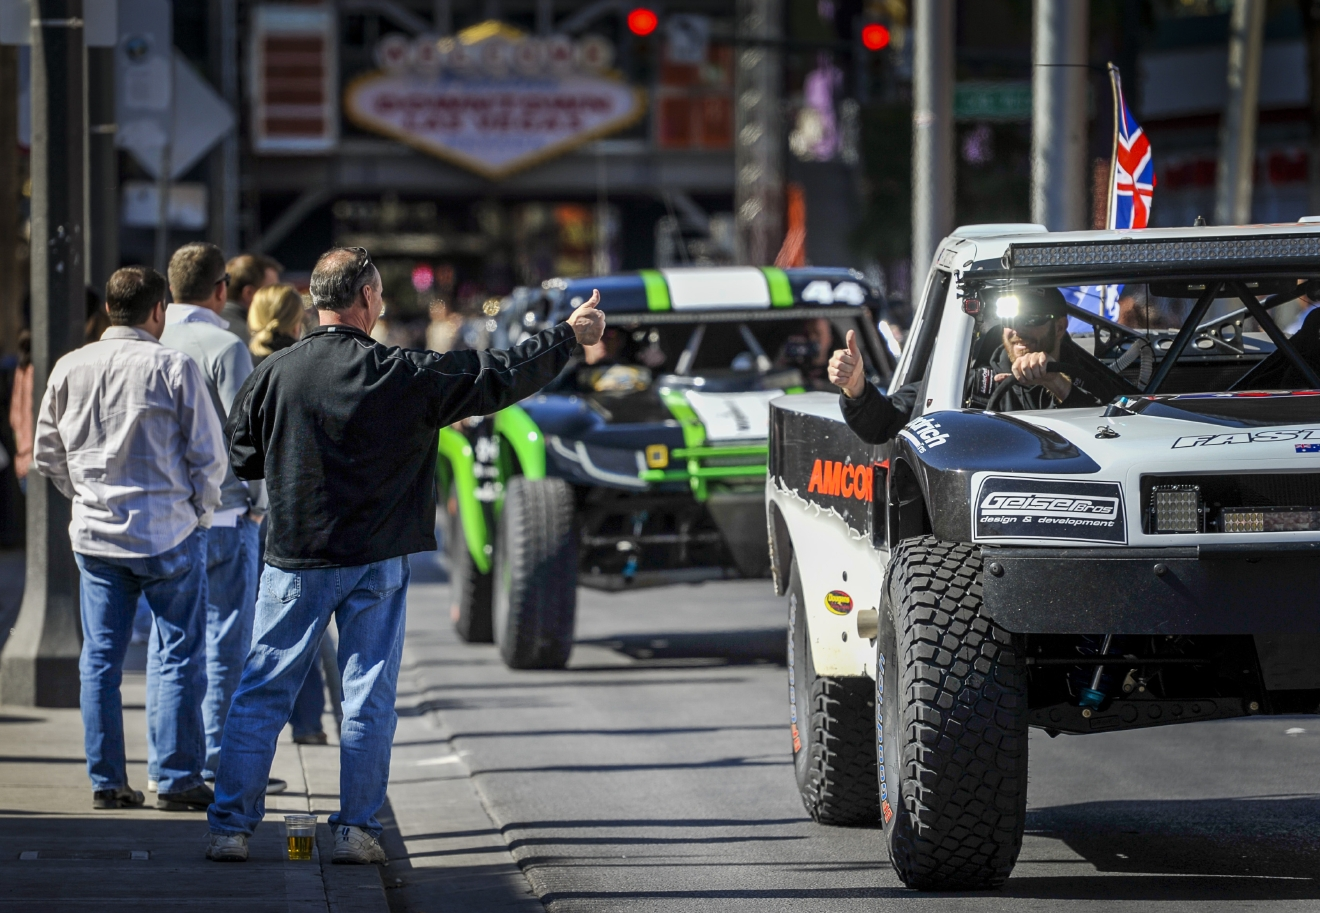 Race fans greet the dirivers as the Mint 400 4 Wheel Parts Vehicle Procession powered by Odyssey Battery enters downtown Las Vegas along Fremont Street East to kick off the Mint 400 off-road race weekend on Wednesday, Mar. 1, 2017. [Mark Damon/Las Vegas News Bureau]